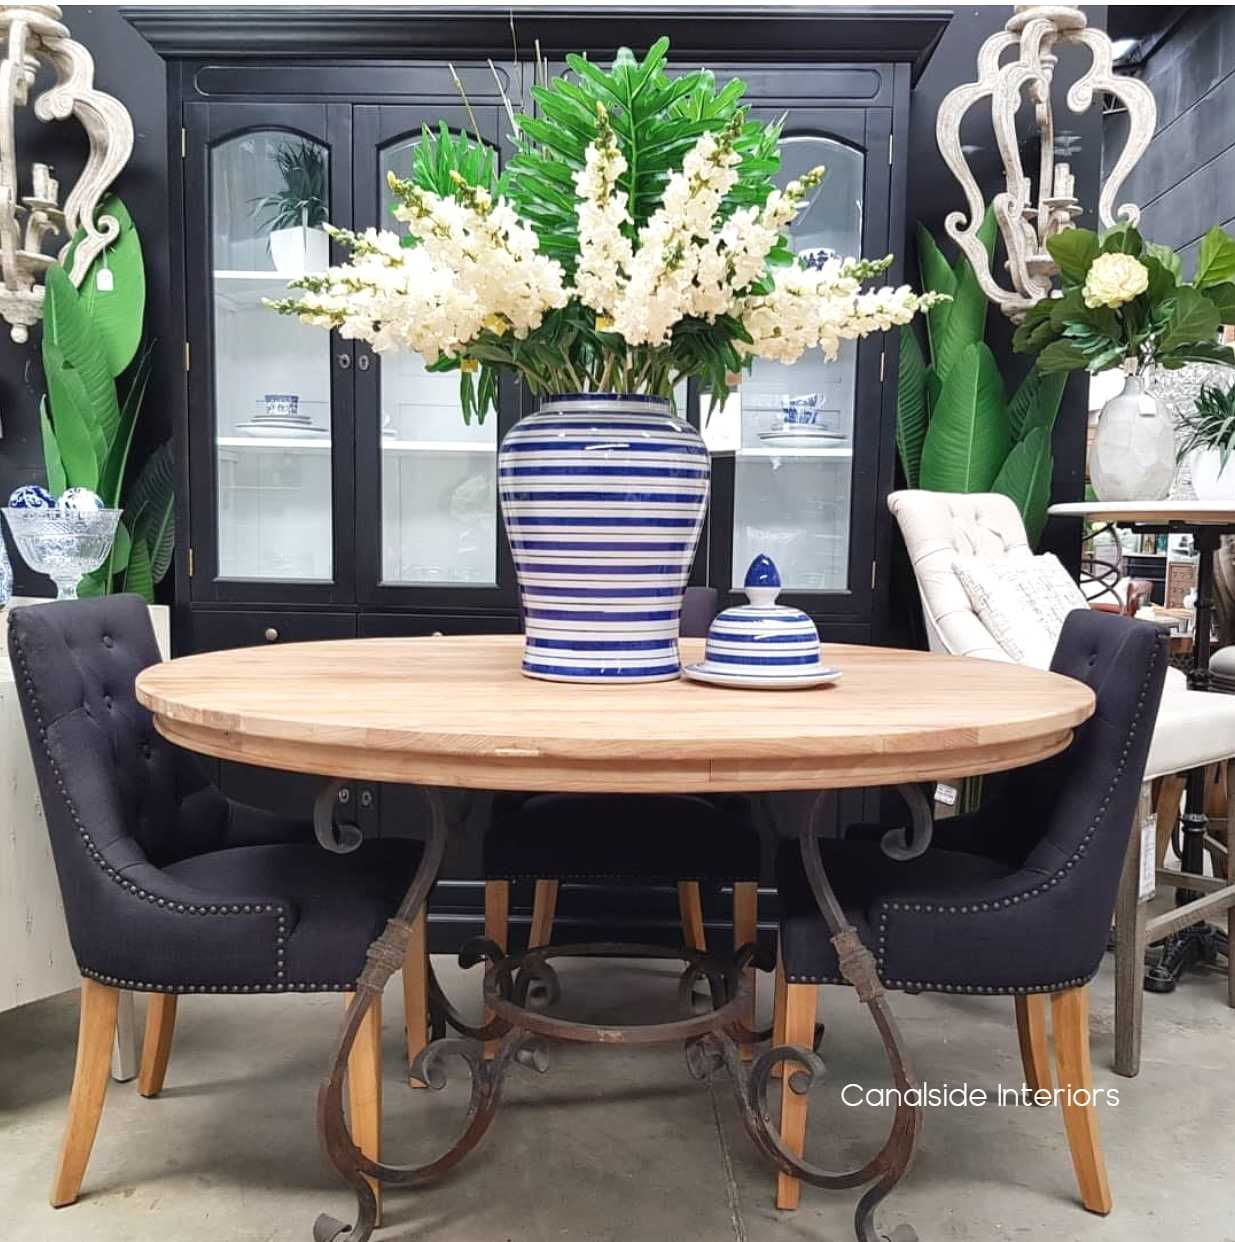 Santiago Round Dining Table with Reclaimed Wood Top